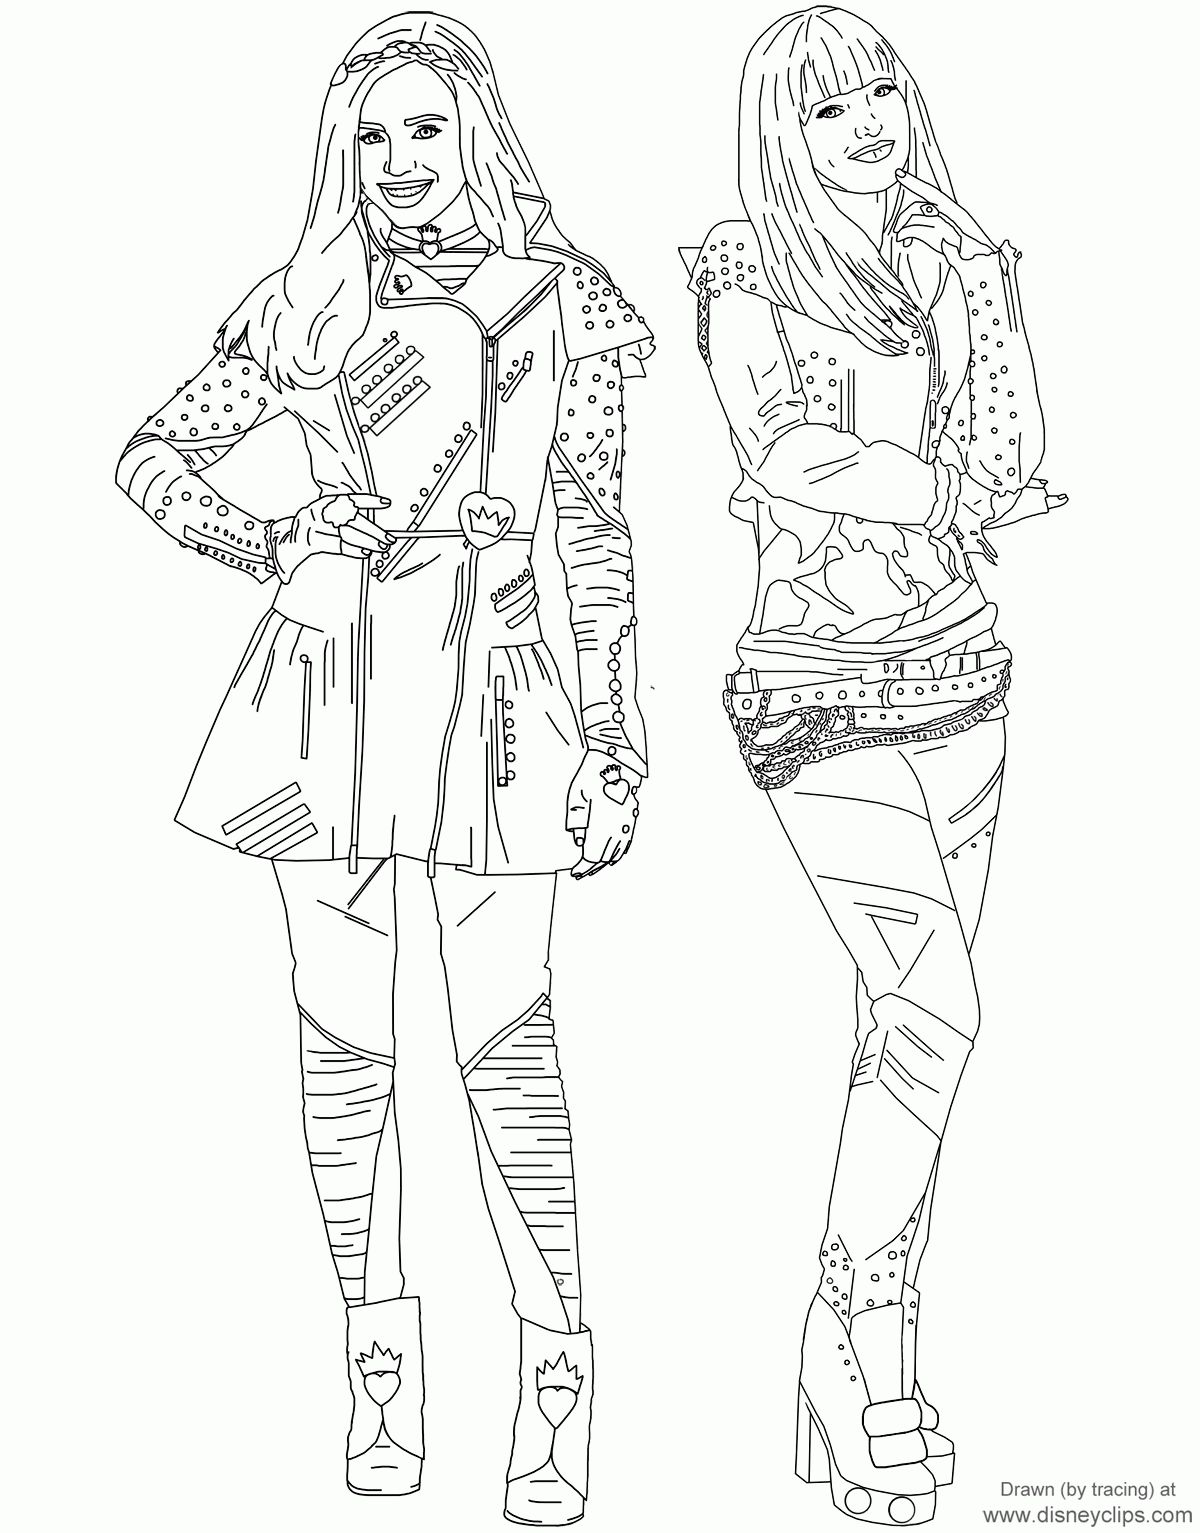 Best Descendants Coloring Pages Printable And Online Descendants Coloring Pages Coloring Pages To Print Disney Coloring Pages